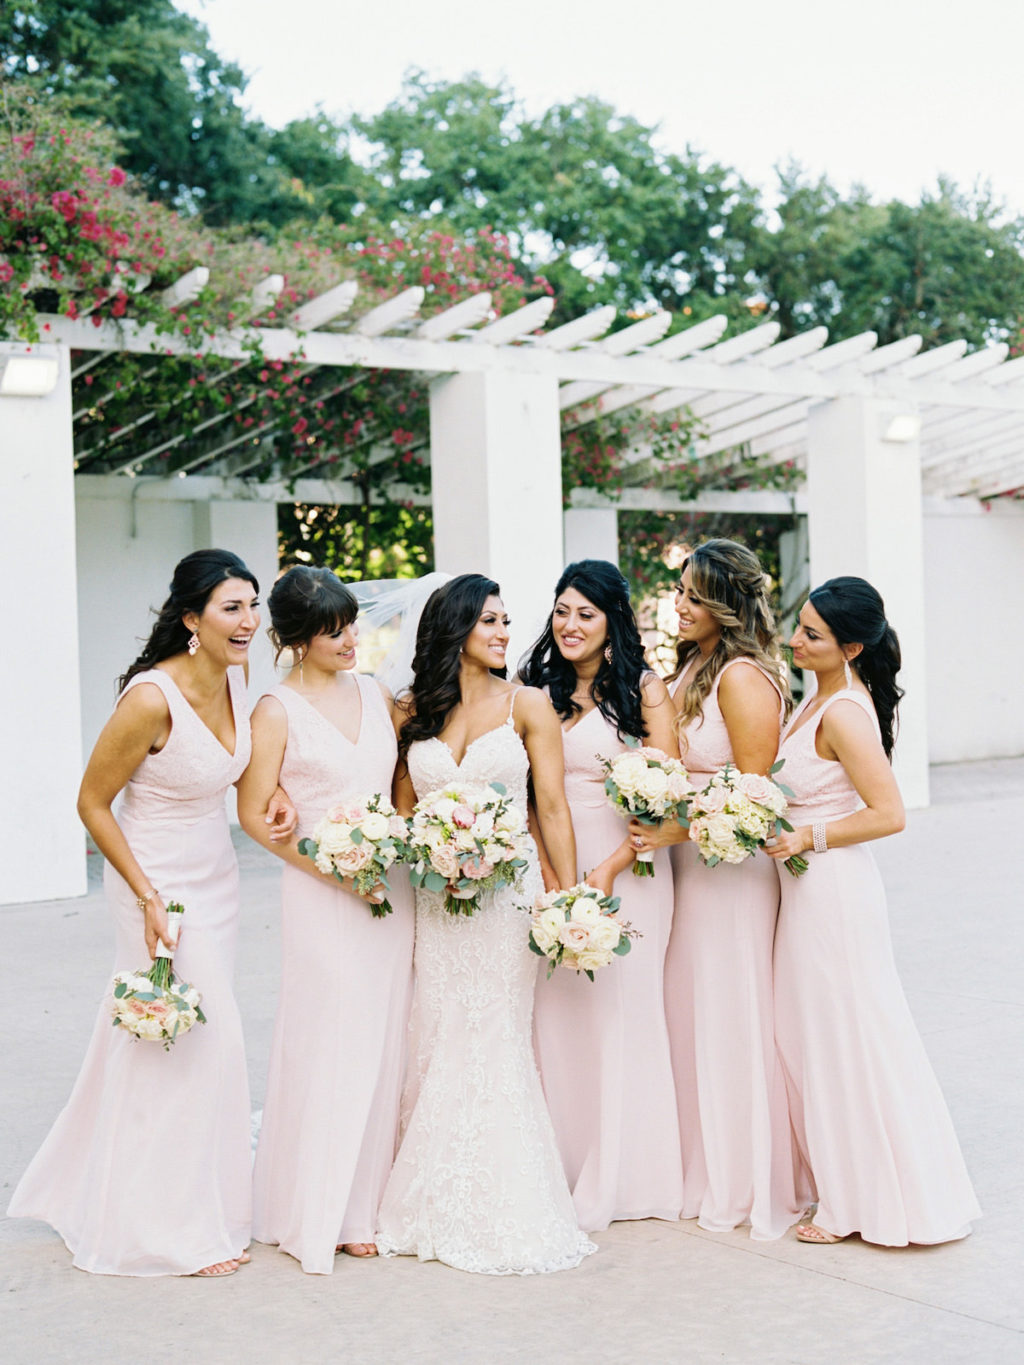 Bride and Bridesmaids Portrait Outdoor Vinoy Park St. Pete | Blush Pink Bridesmaids Dresses with Blush and White Rose Bouquets